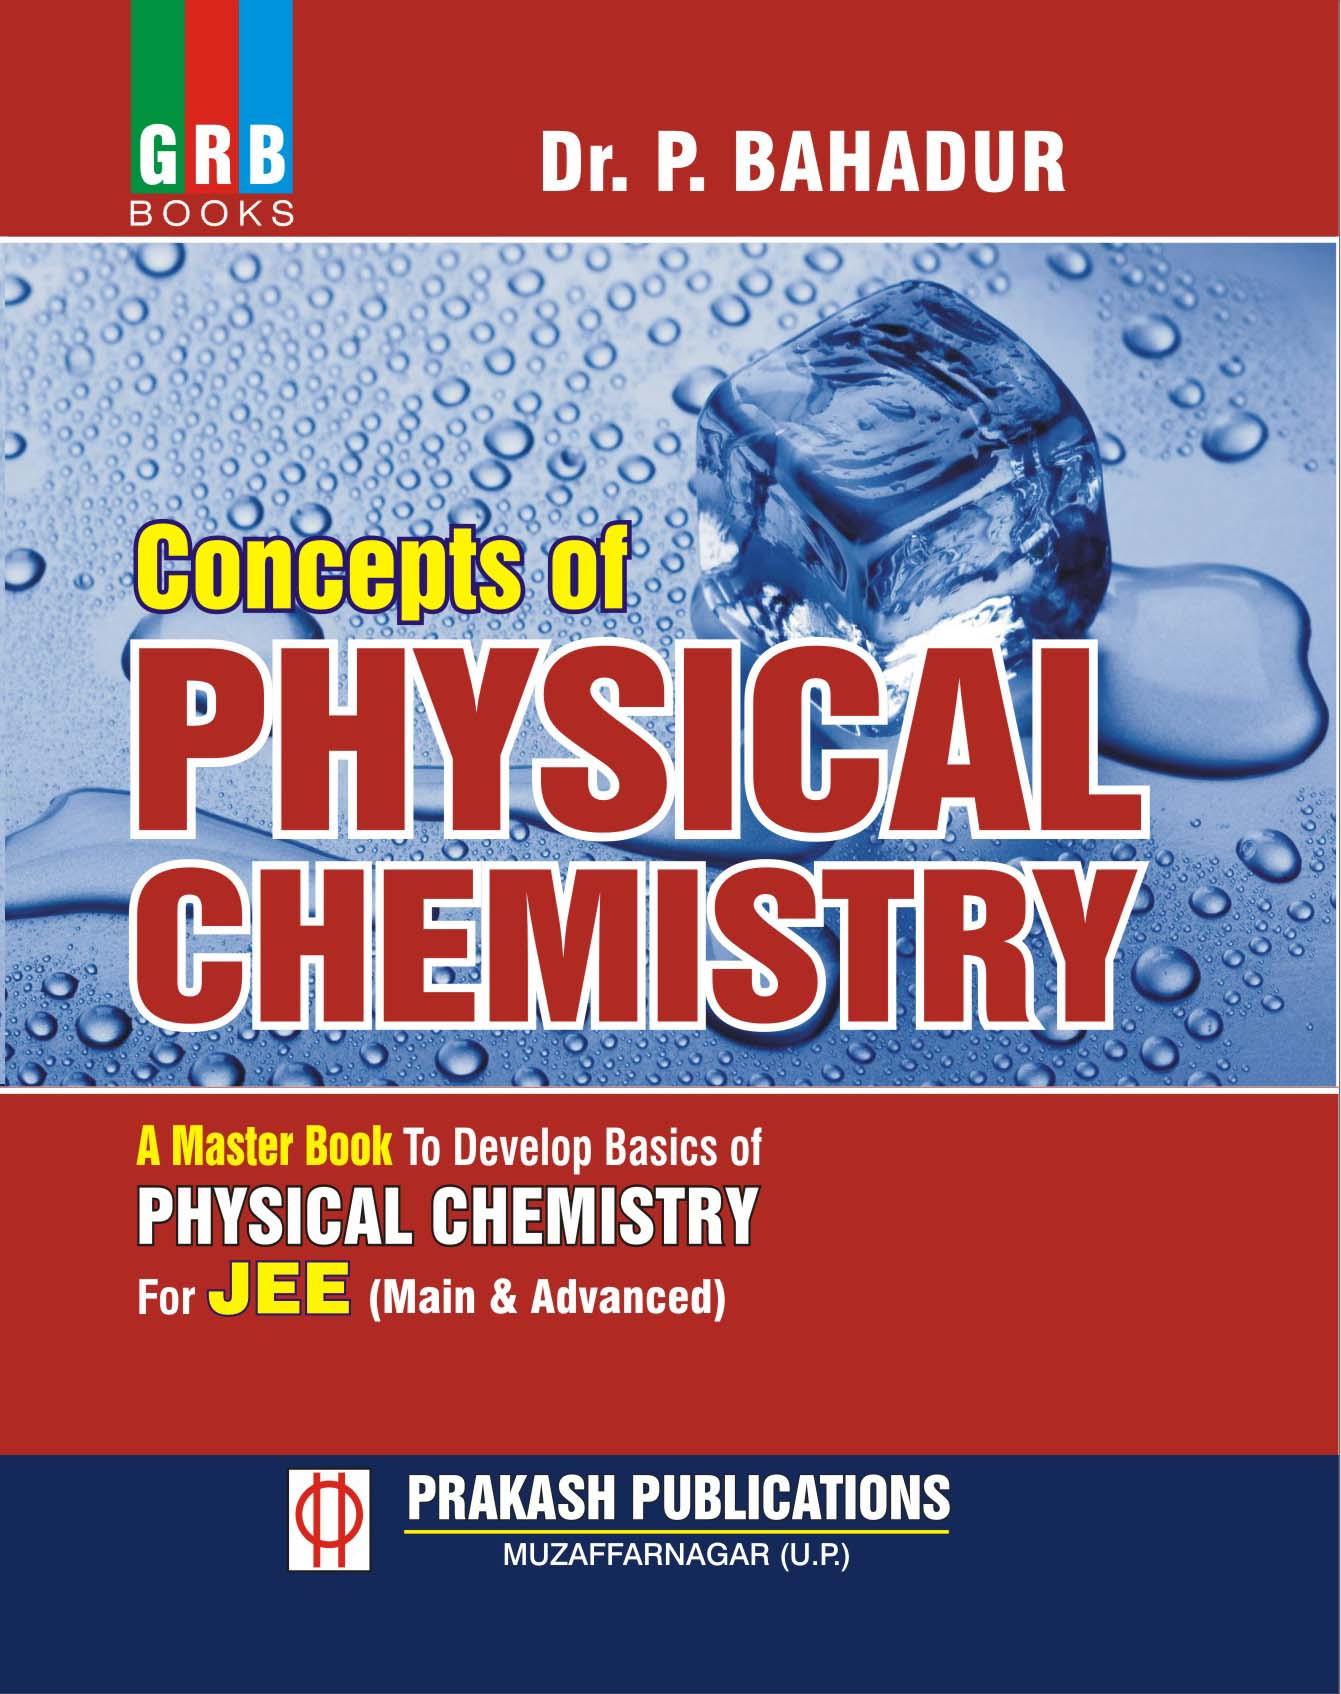 physical chemistry The annual review of physical chemistry, in publication since 1950, covers significant developments in the field of physical chemistry, including biophysical.